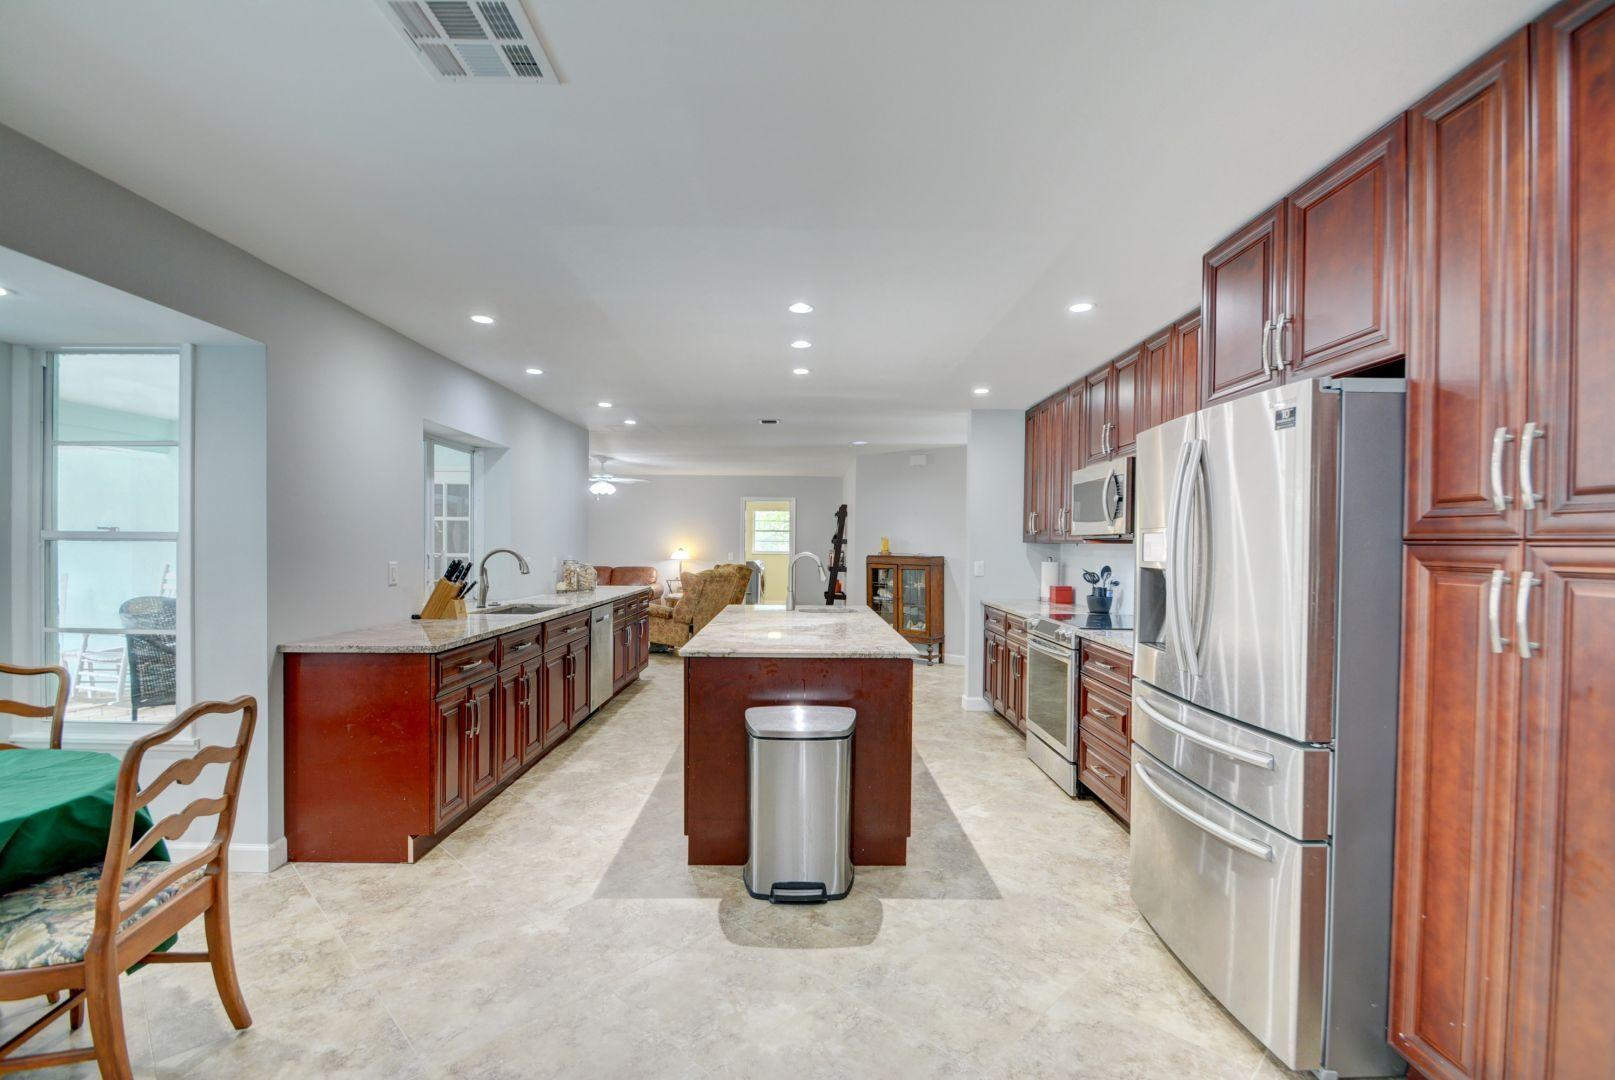 INDIALUCIE REALTY